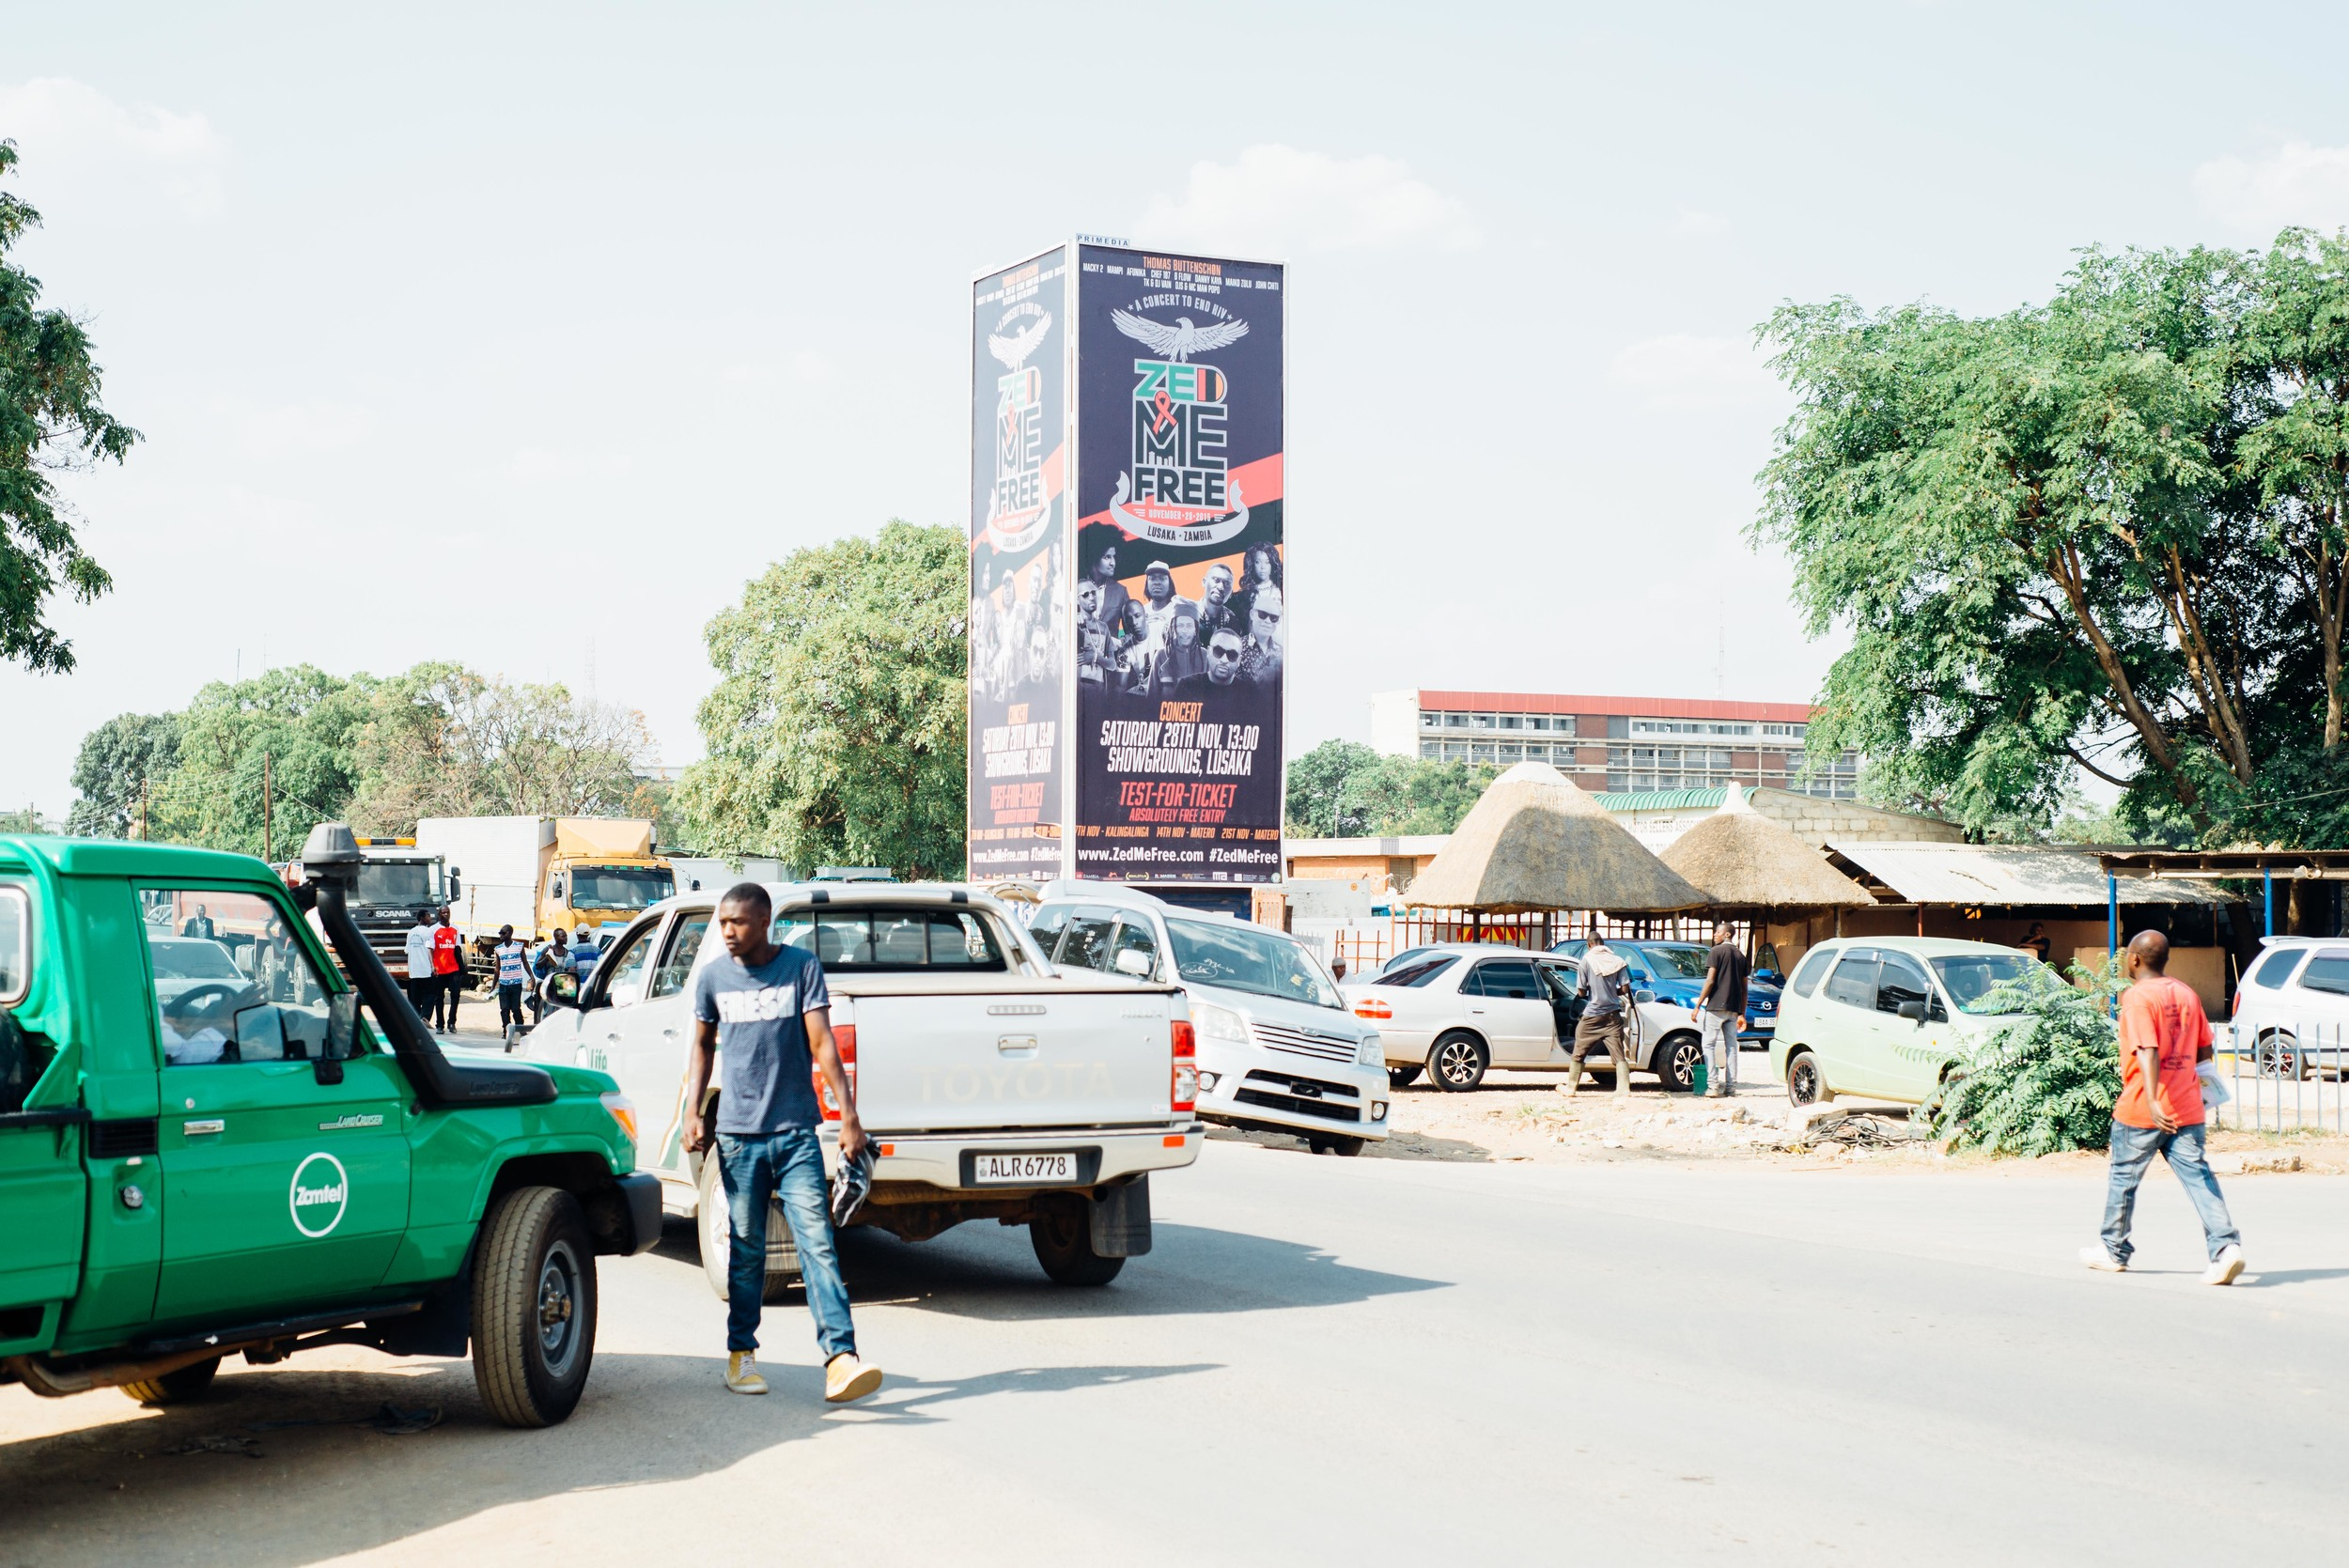 A vertical billboard deployed near the central bus station in Lusaka,the capital city of Zambia.